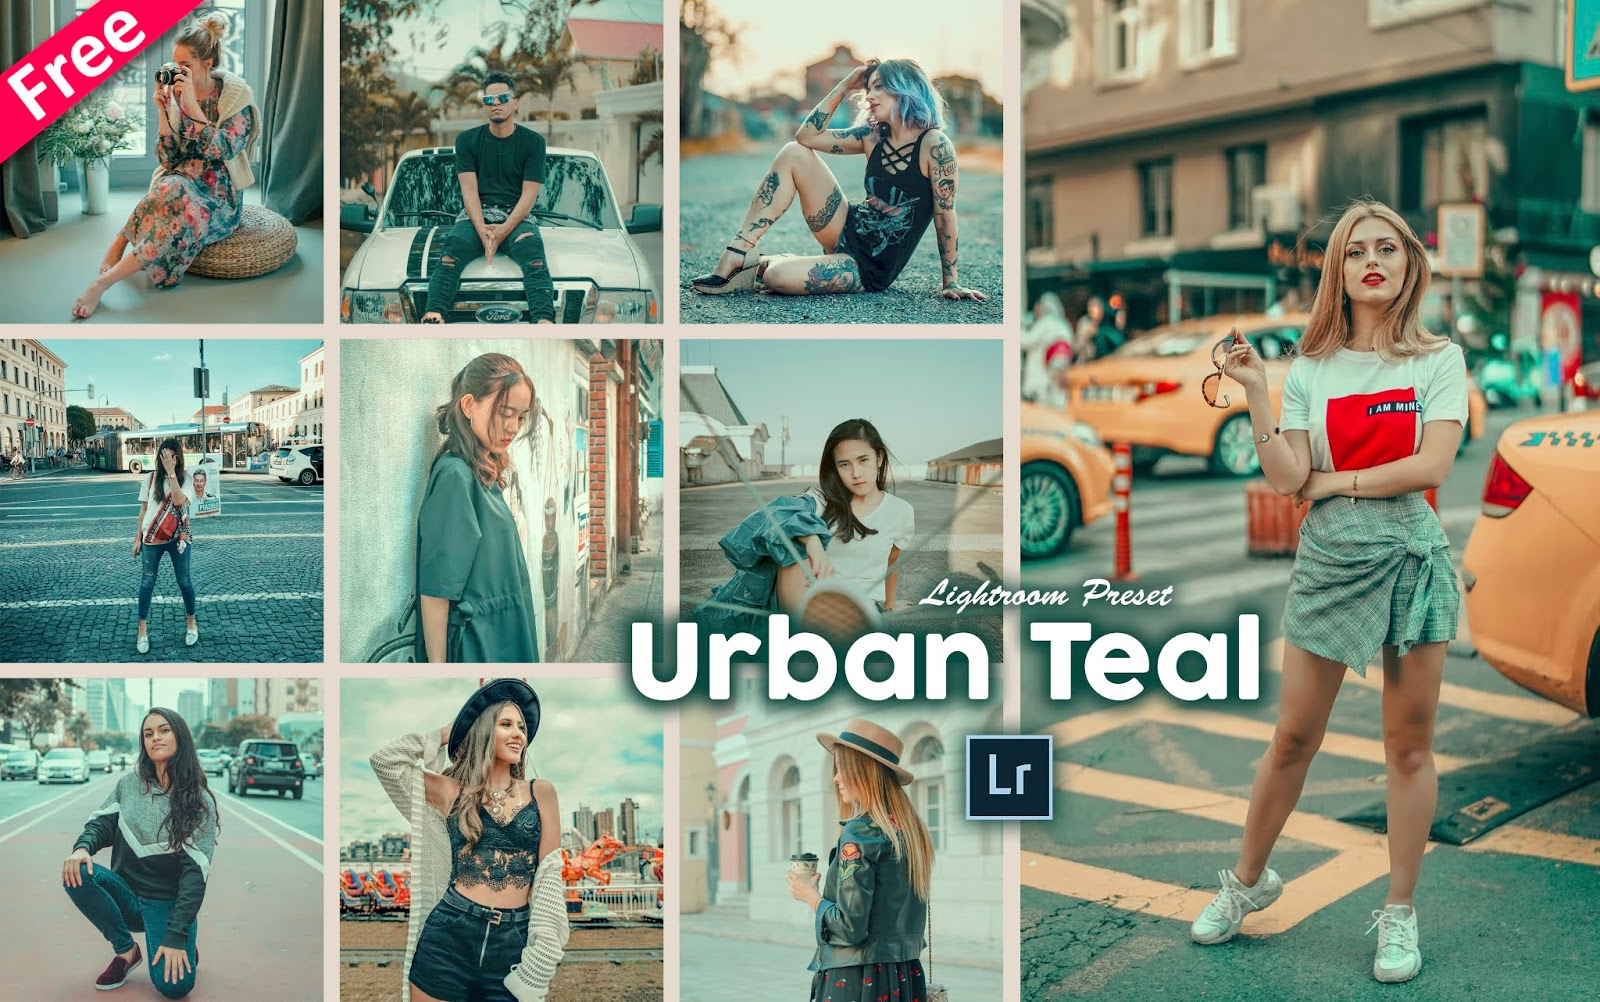 Urban Teal Tone Lightroom Presets for Free | How to Make Urban Teal Tone to Photos in Lightroom